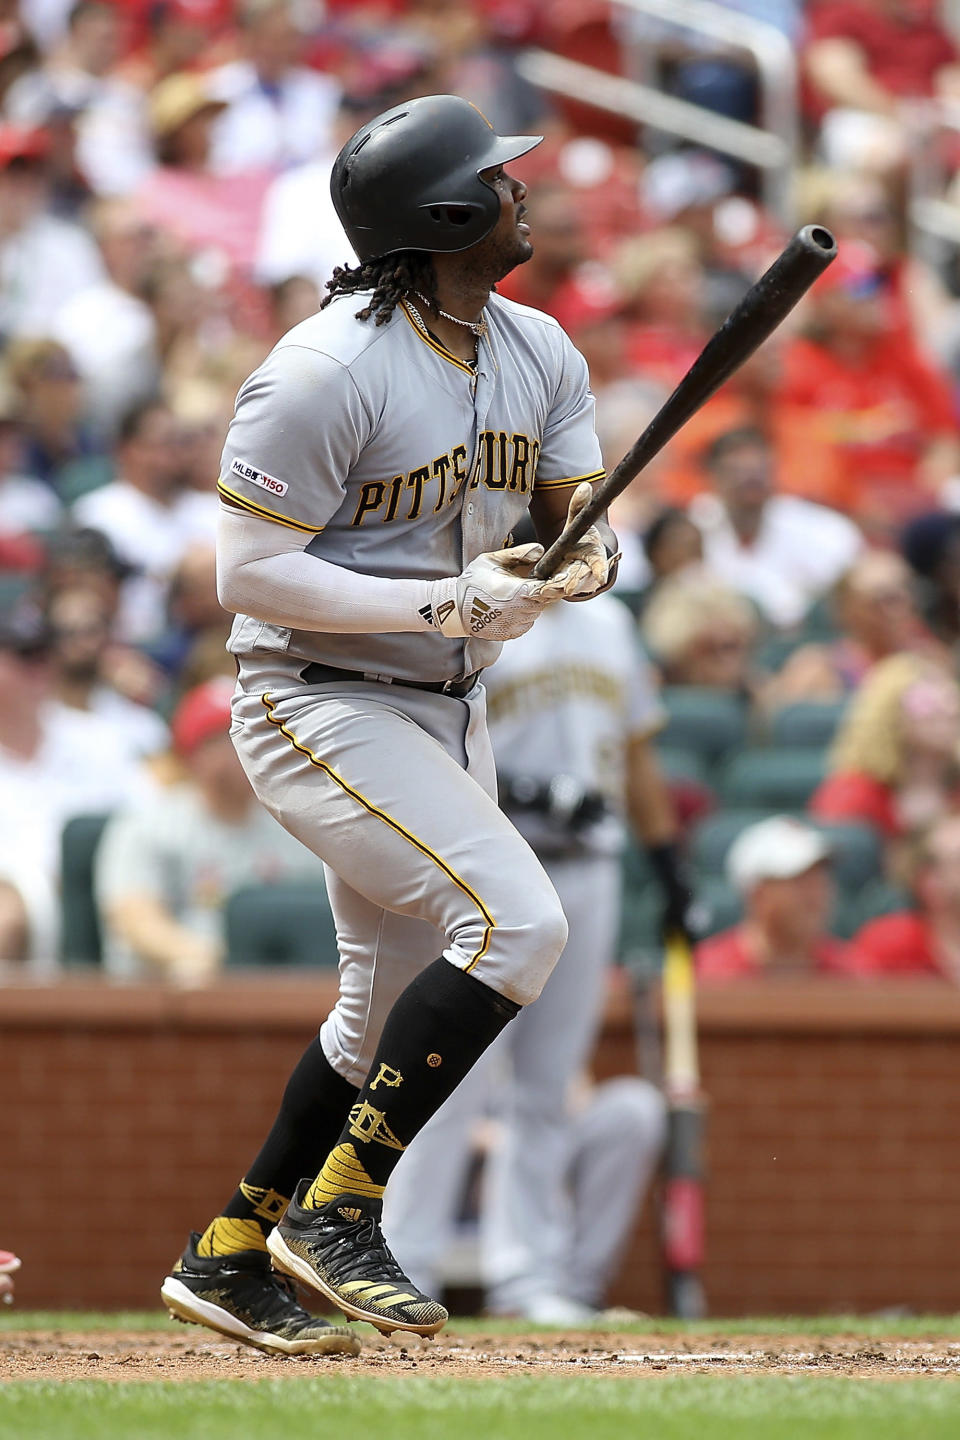 Pittsburgh Pirates' Josh Bell follows through after hitting a two-run home run during the fifth inning against the St. Louis Cardinals, Sunday, Aug. 11, 2019, in St. Louis. (AP Photo/Scott Kane)